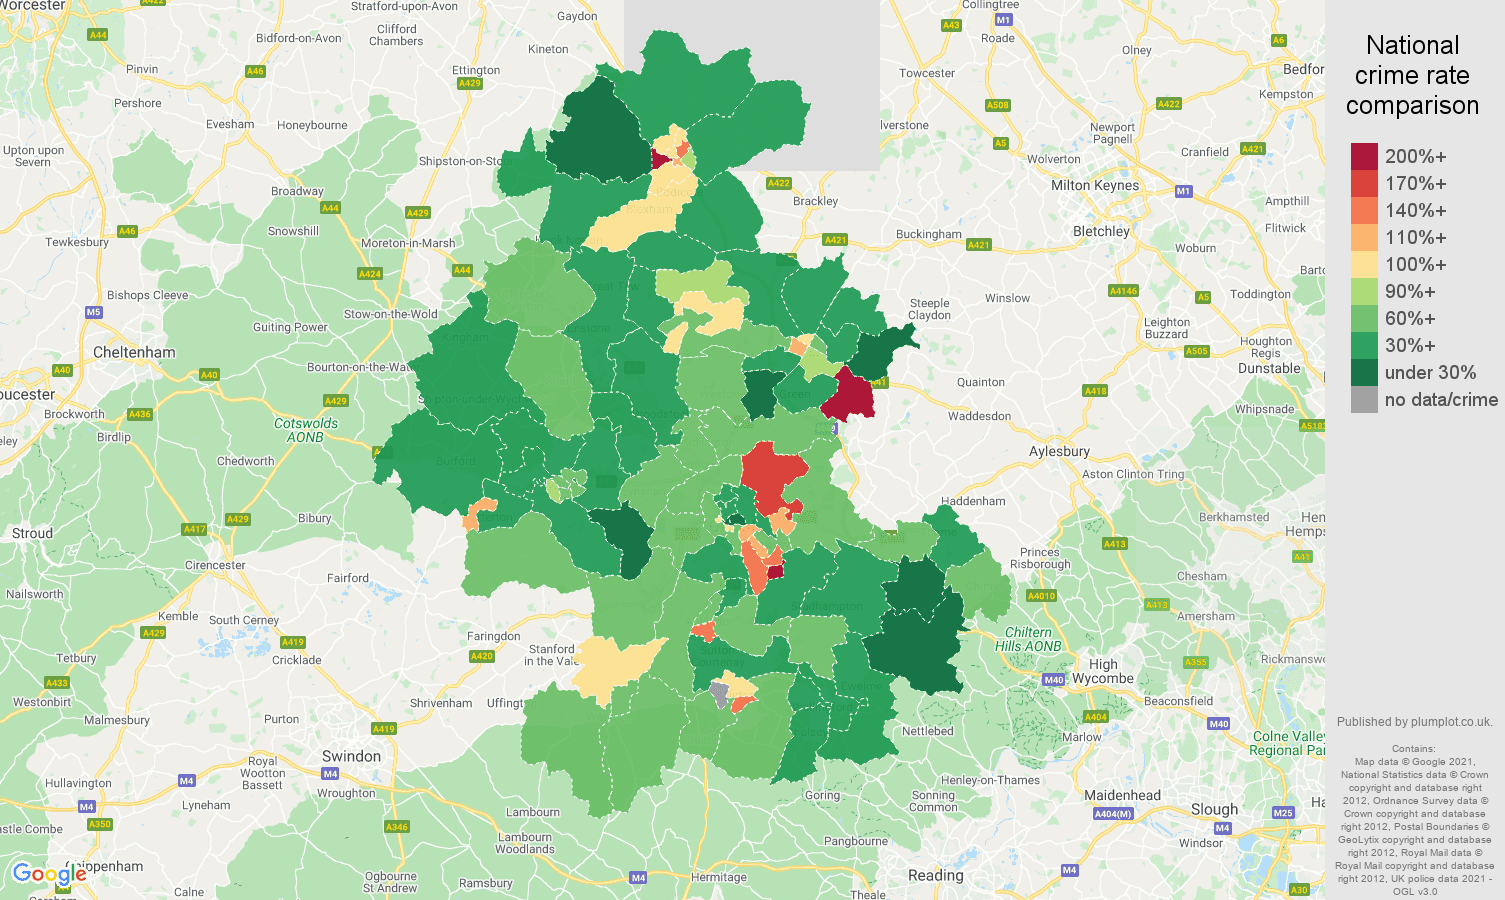 Oxford violent crime rate comparison map